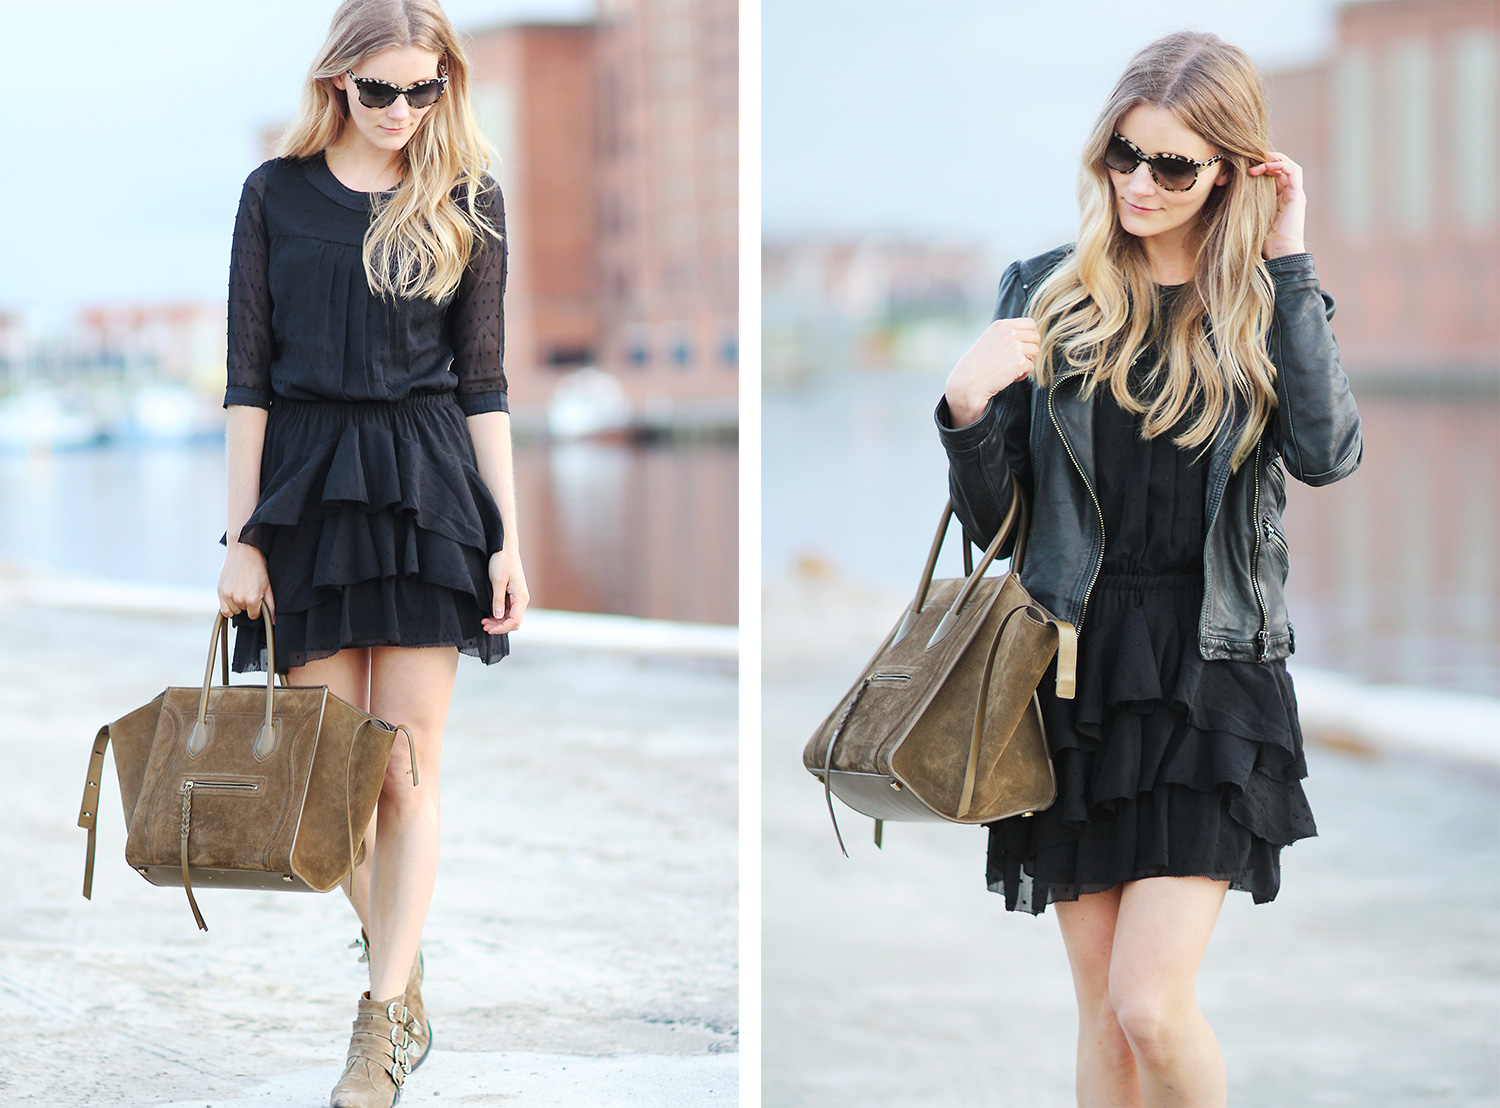 party-dress-going-out-modeblog@2x